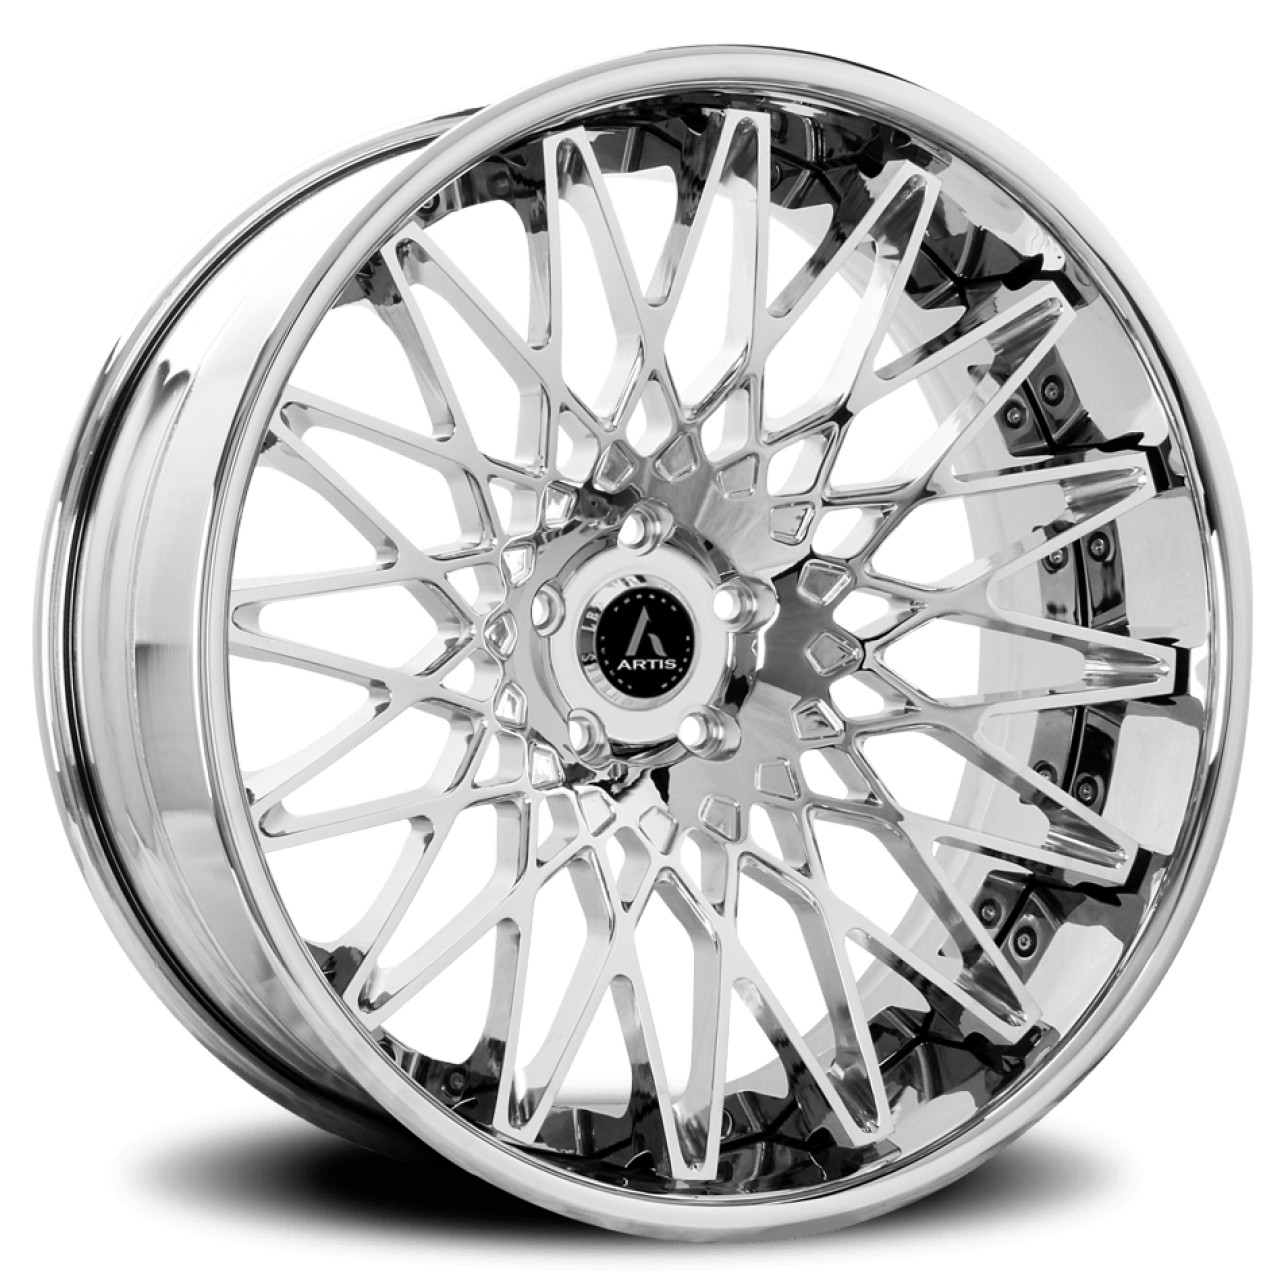 Artis Forged Monza wheel with Chrome finish